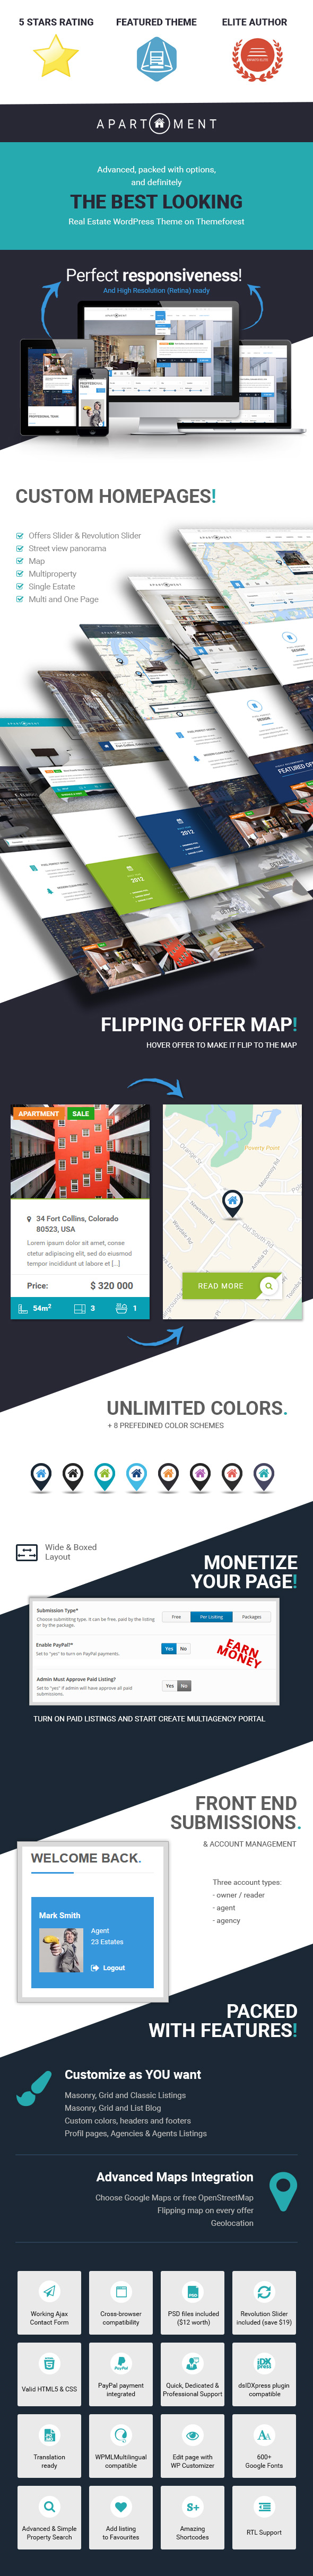 Apartment WP - Real Estate Responsive WordPress Theme for Agents, Portals, Single Property Sites - 2